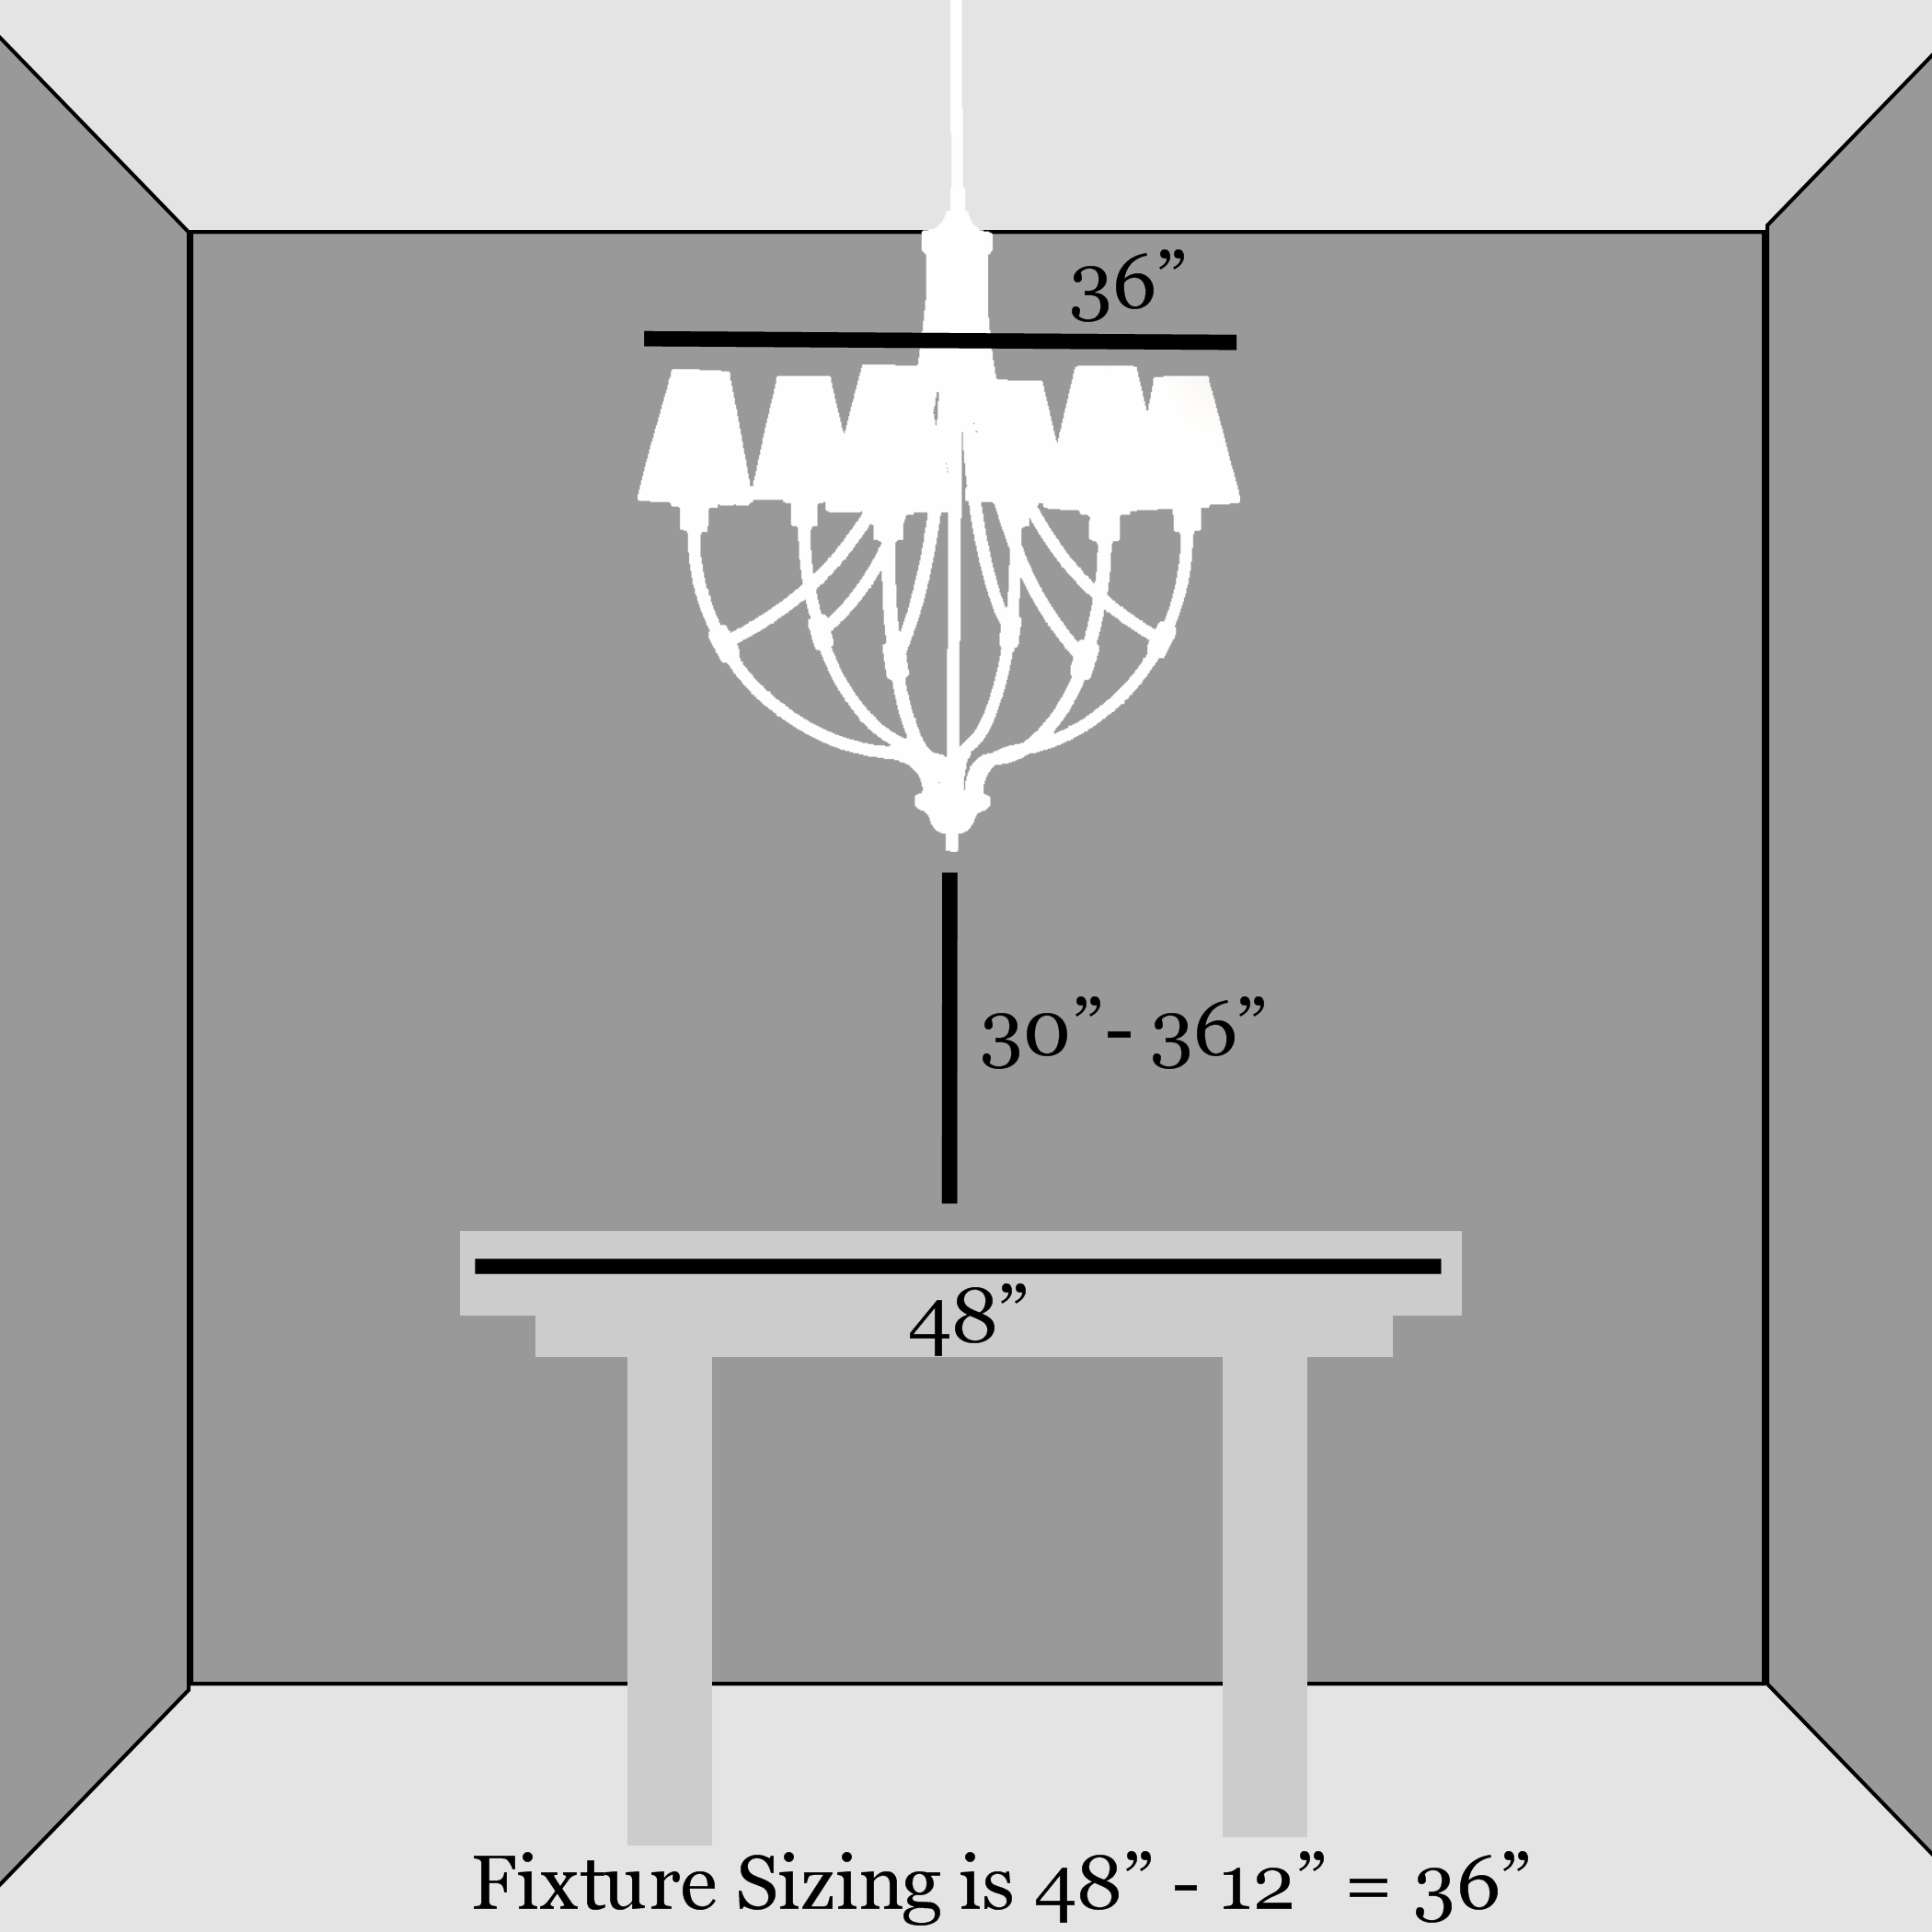 A Dining Room Chandelier Should Be No Wider Than 12 Inches Less The Width Of Table And Sit 30 Above Top For Standard 8